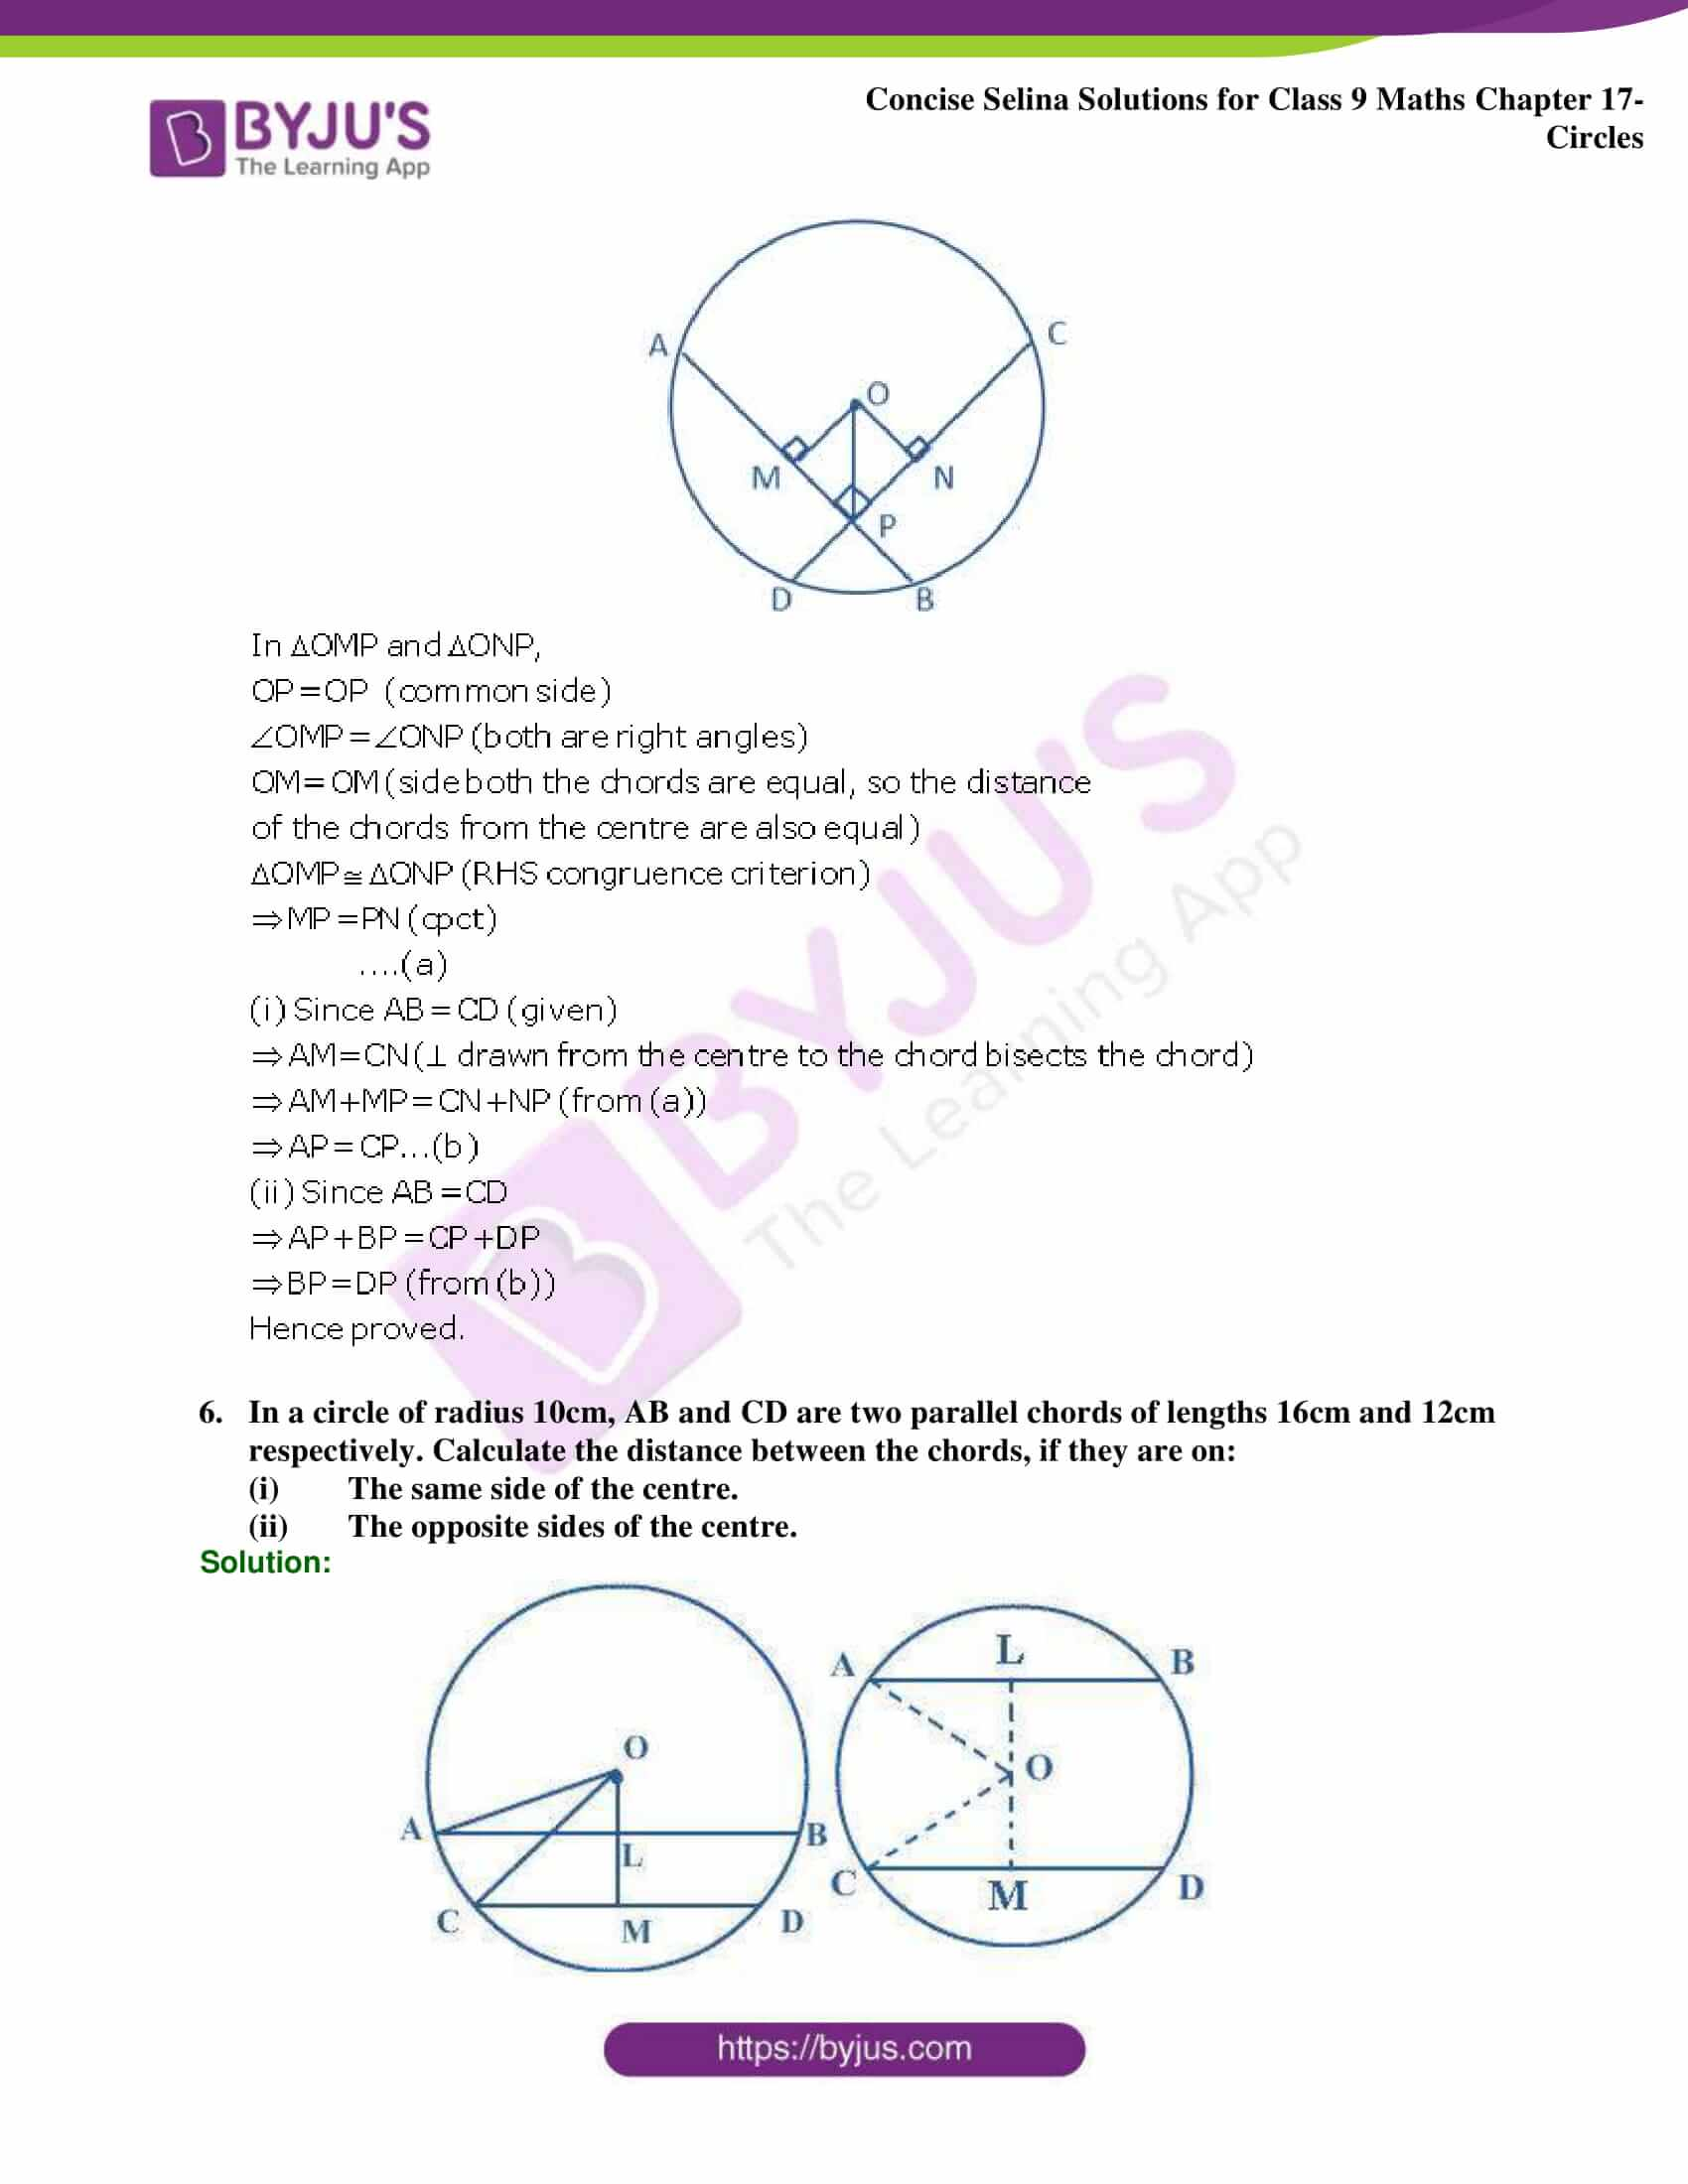 Concise Selina Solutions Class 9 Maths Chapter 17 Circles part 32